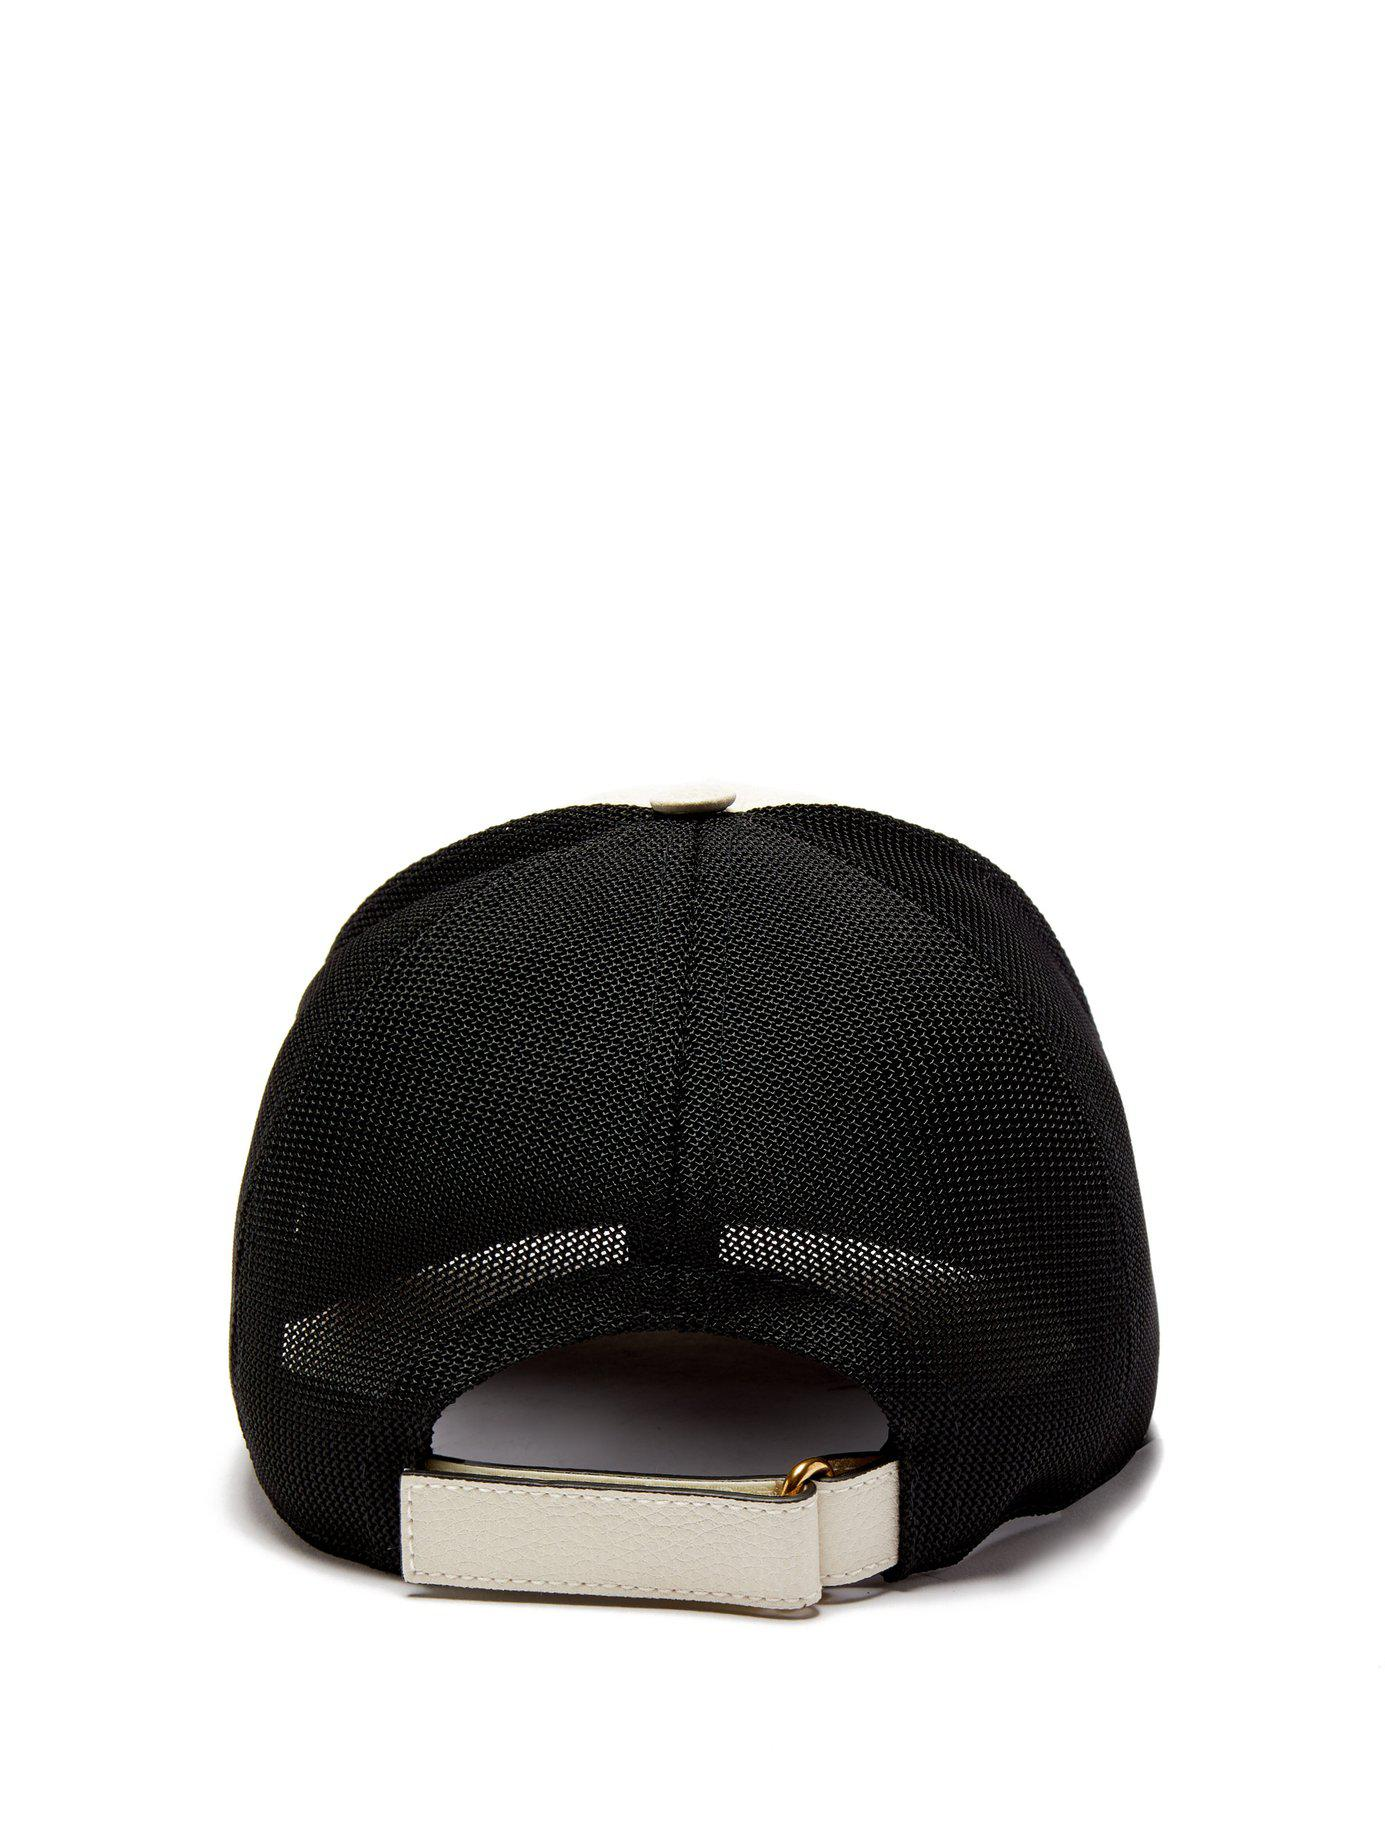 1e015033b52e2 Gucci - Black Vintage Logo Leather And Mesh Cap for Men - Lyst. View  fullscreen